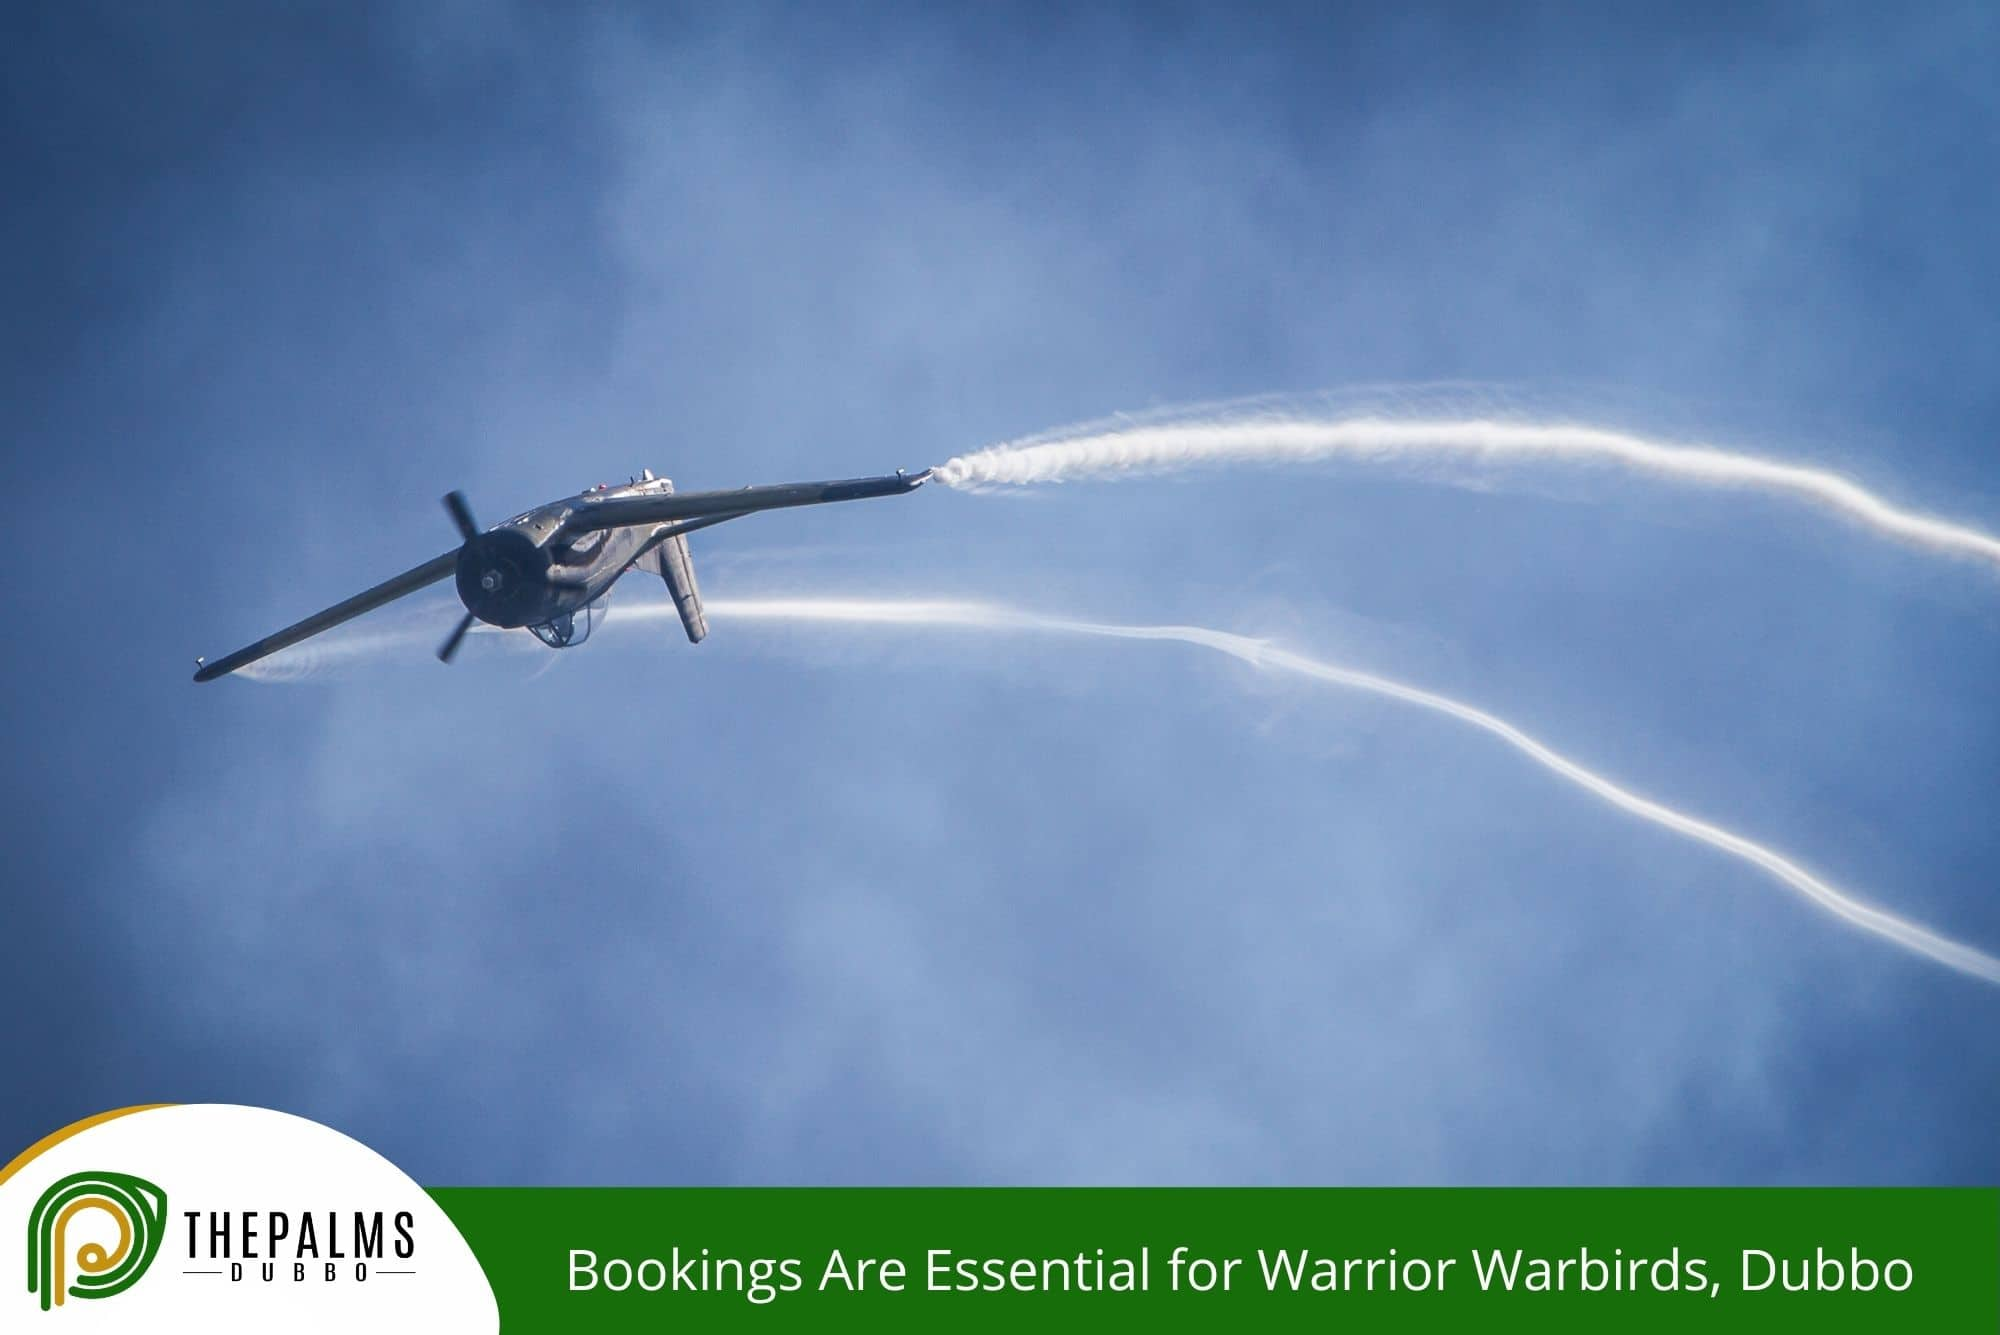 Bookings Are Essential for Warrior Warbirds, Dubbo